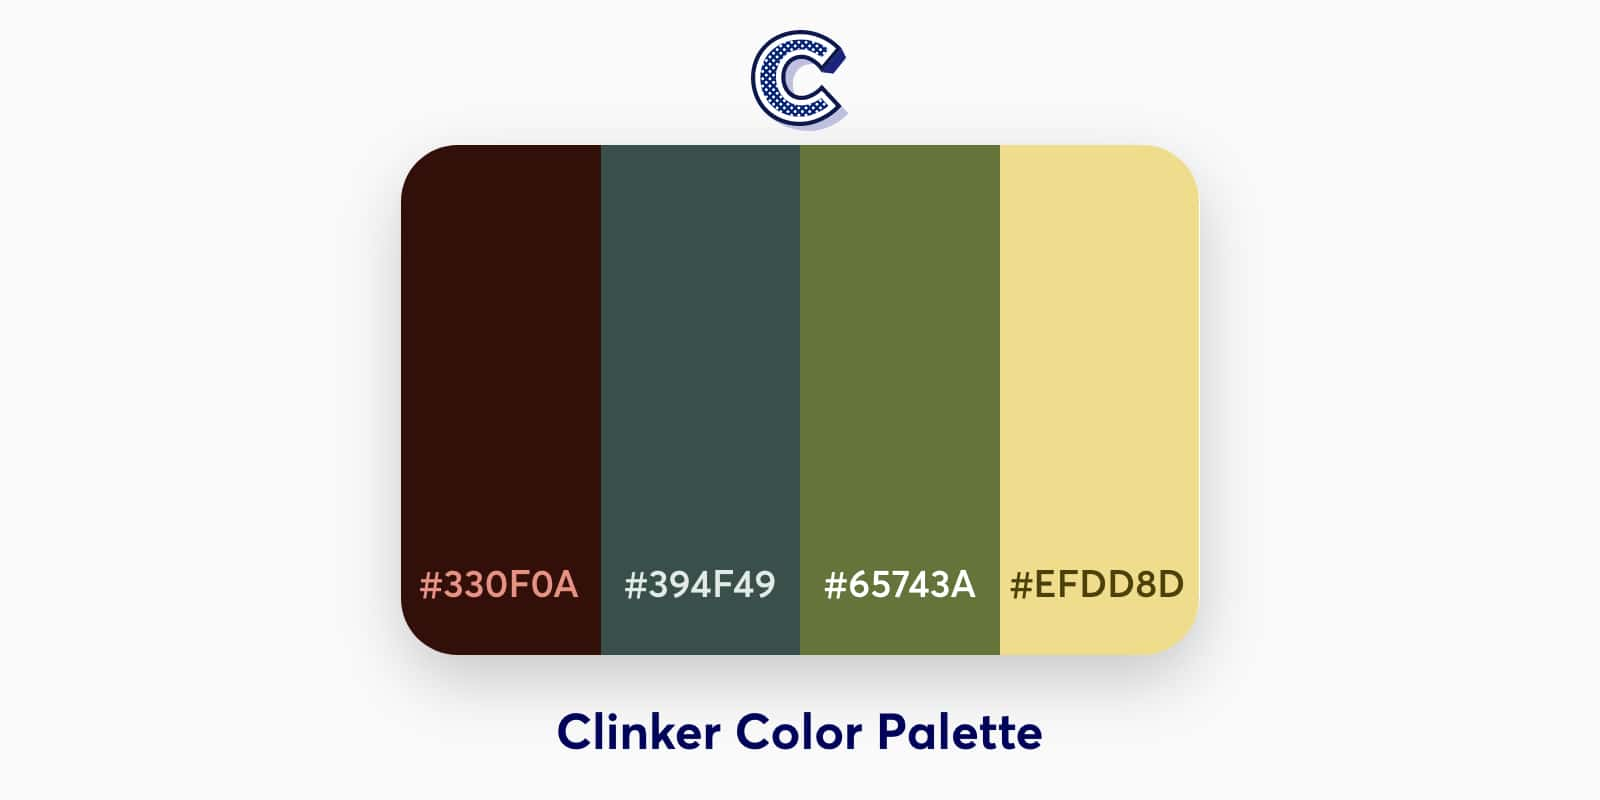 the featured image of clinker color palette